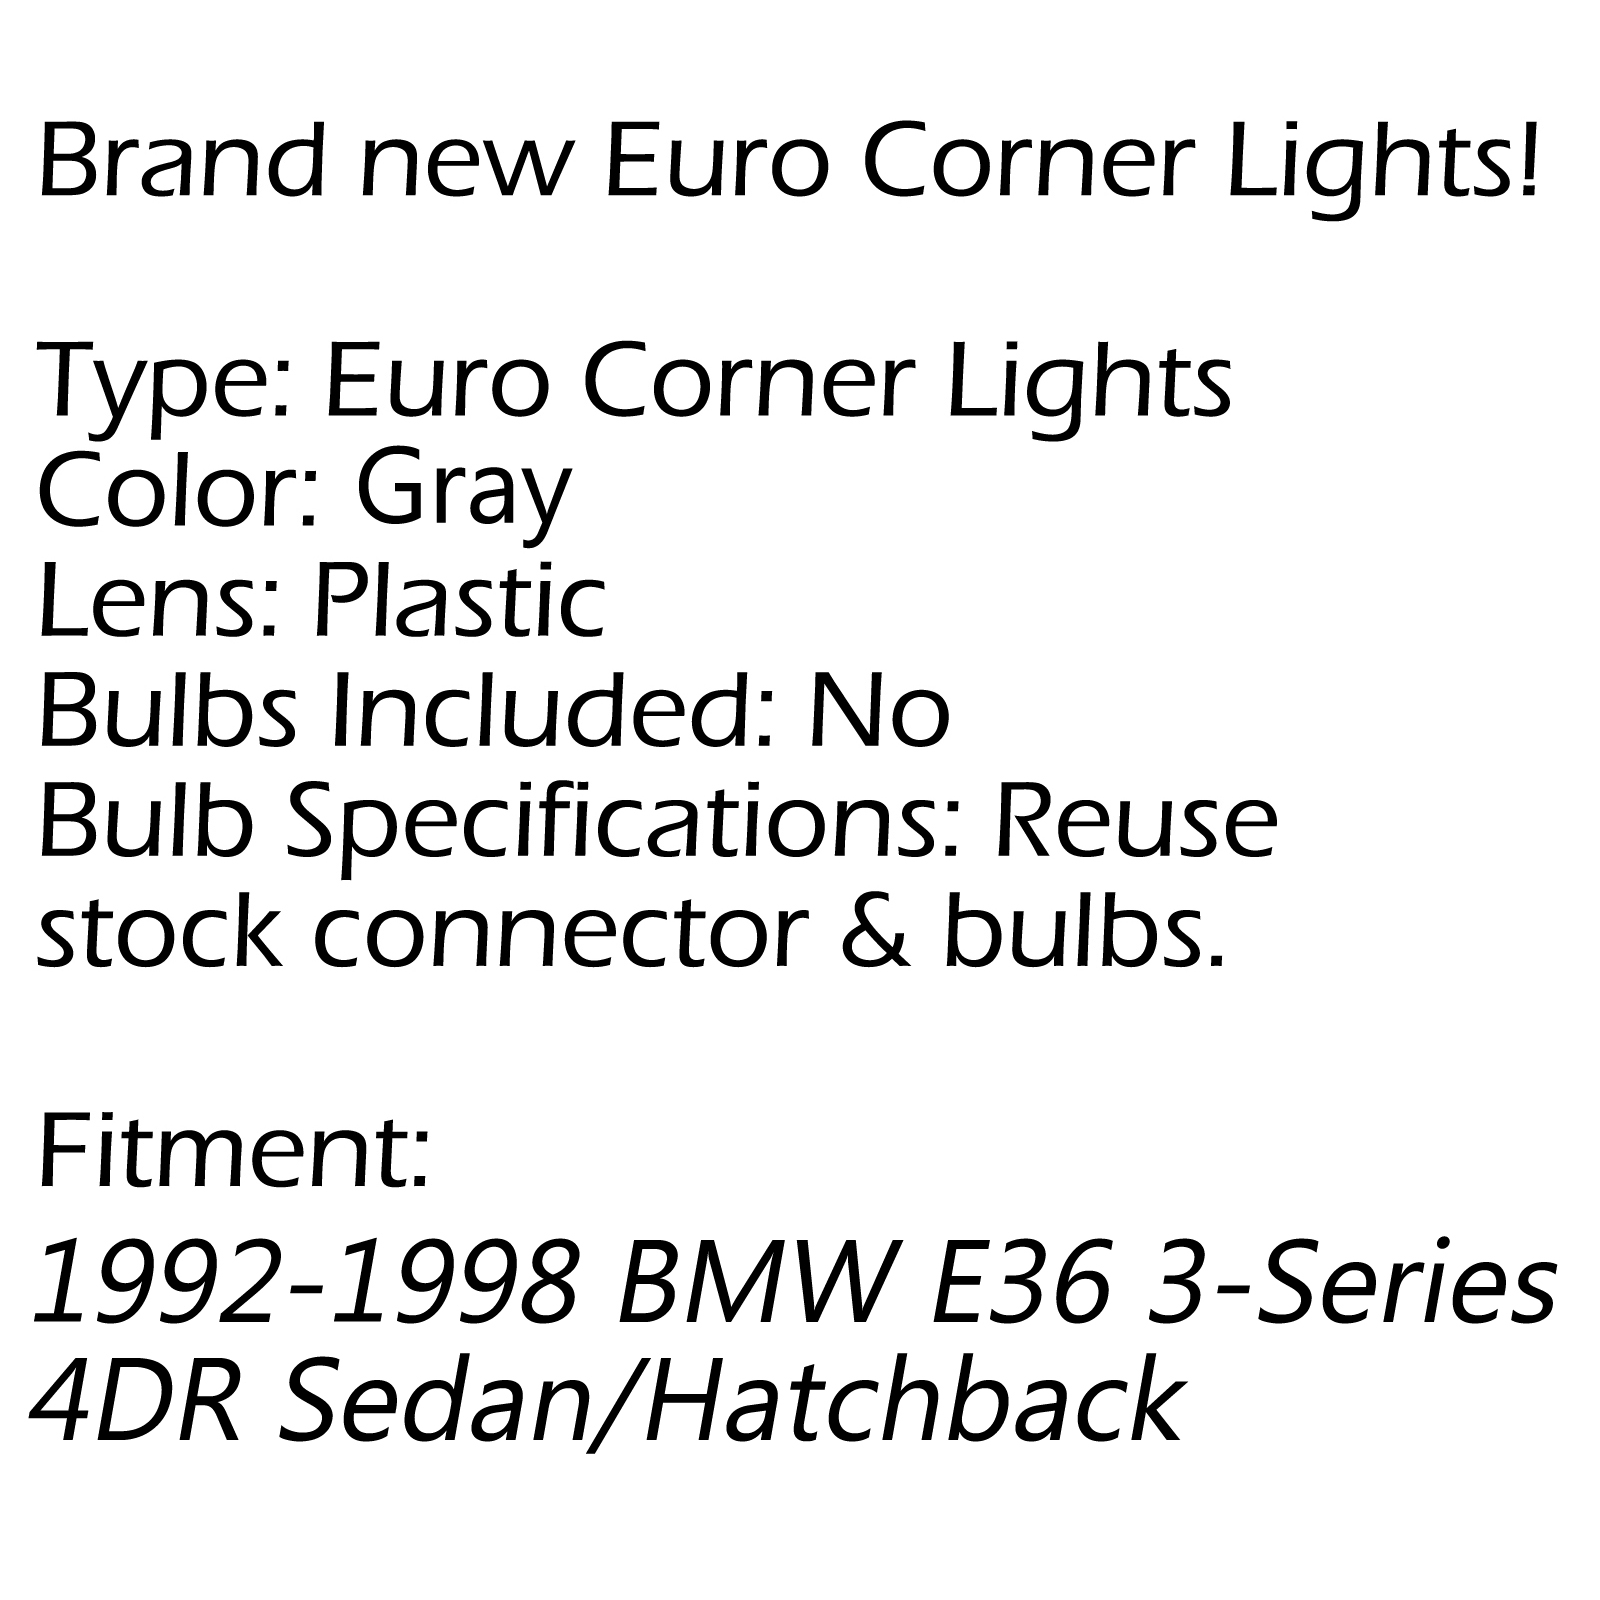 For 1992-1998 BMW E36 3-Series 4Dr Sedan/Hatchback Euro